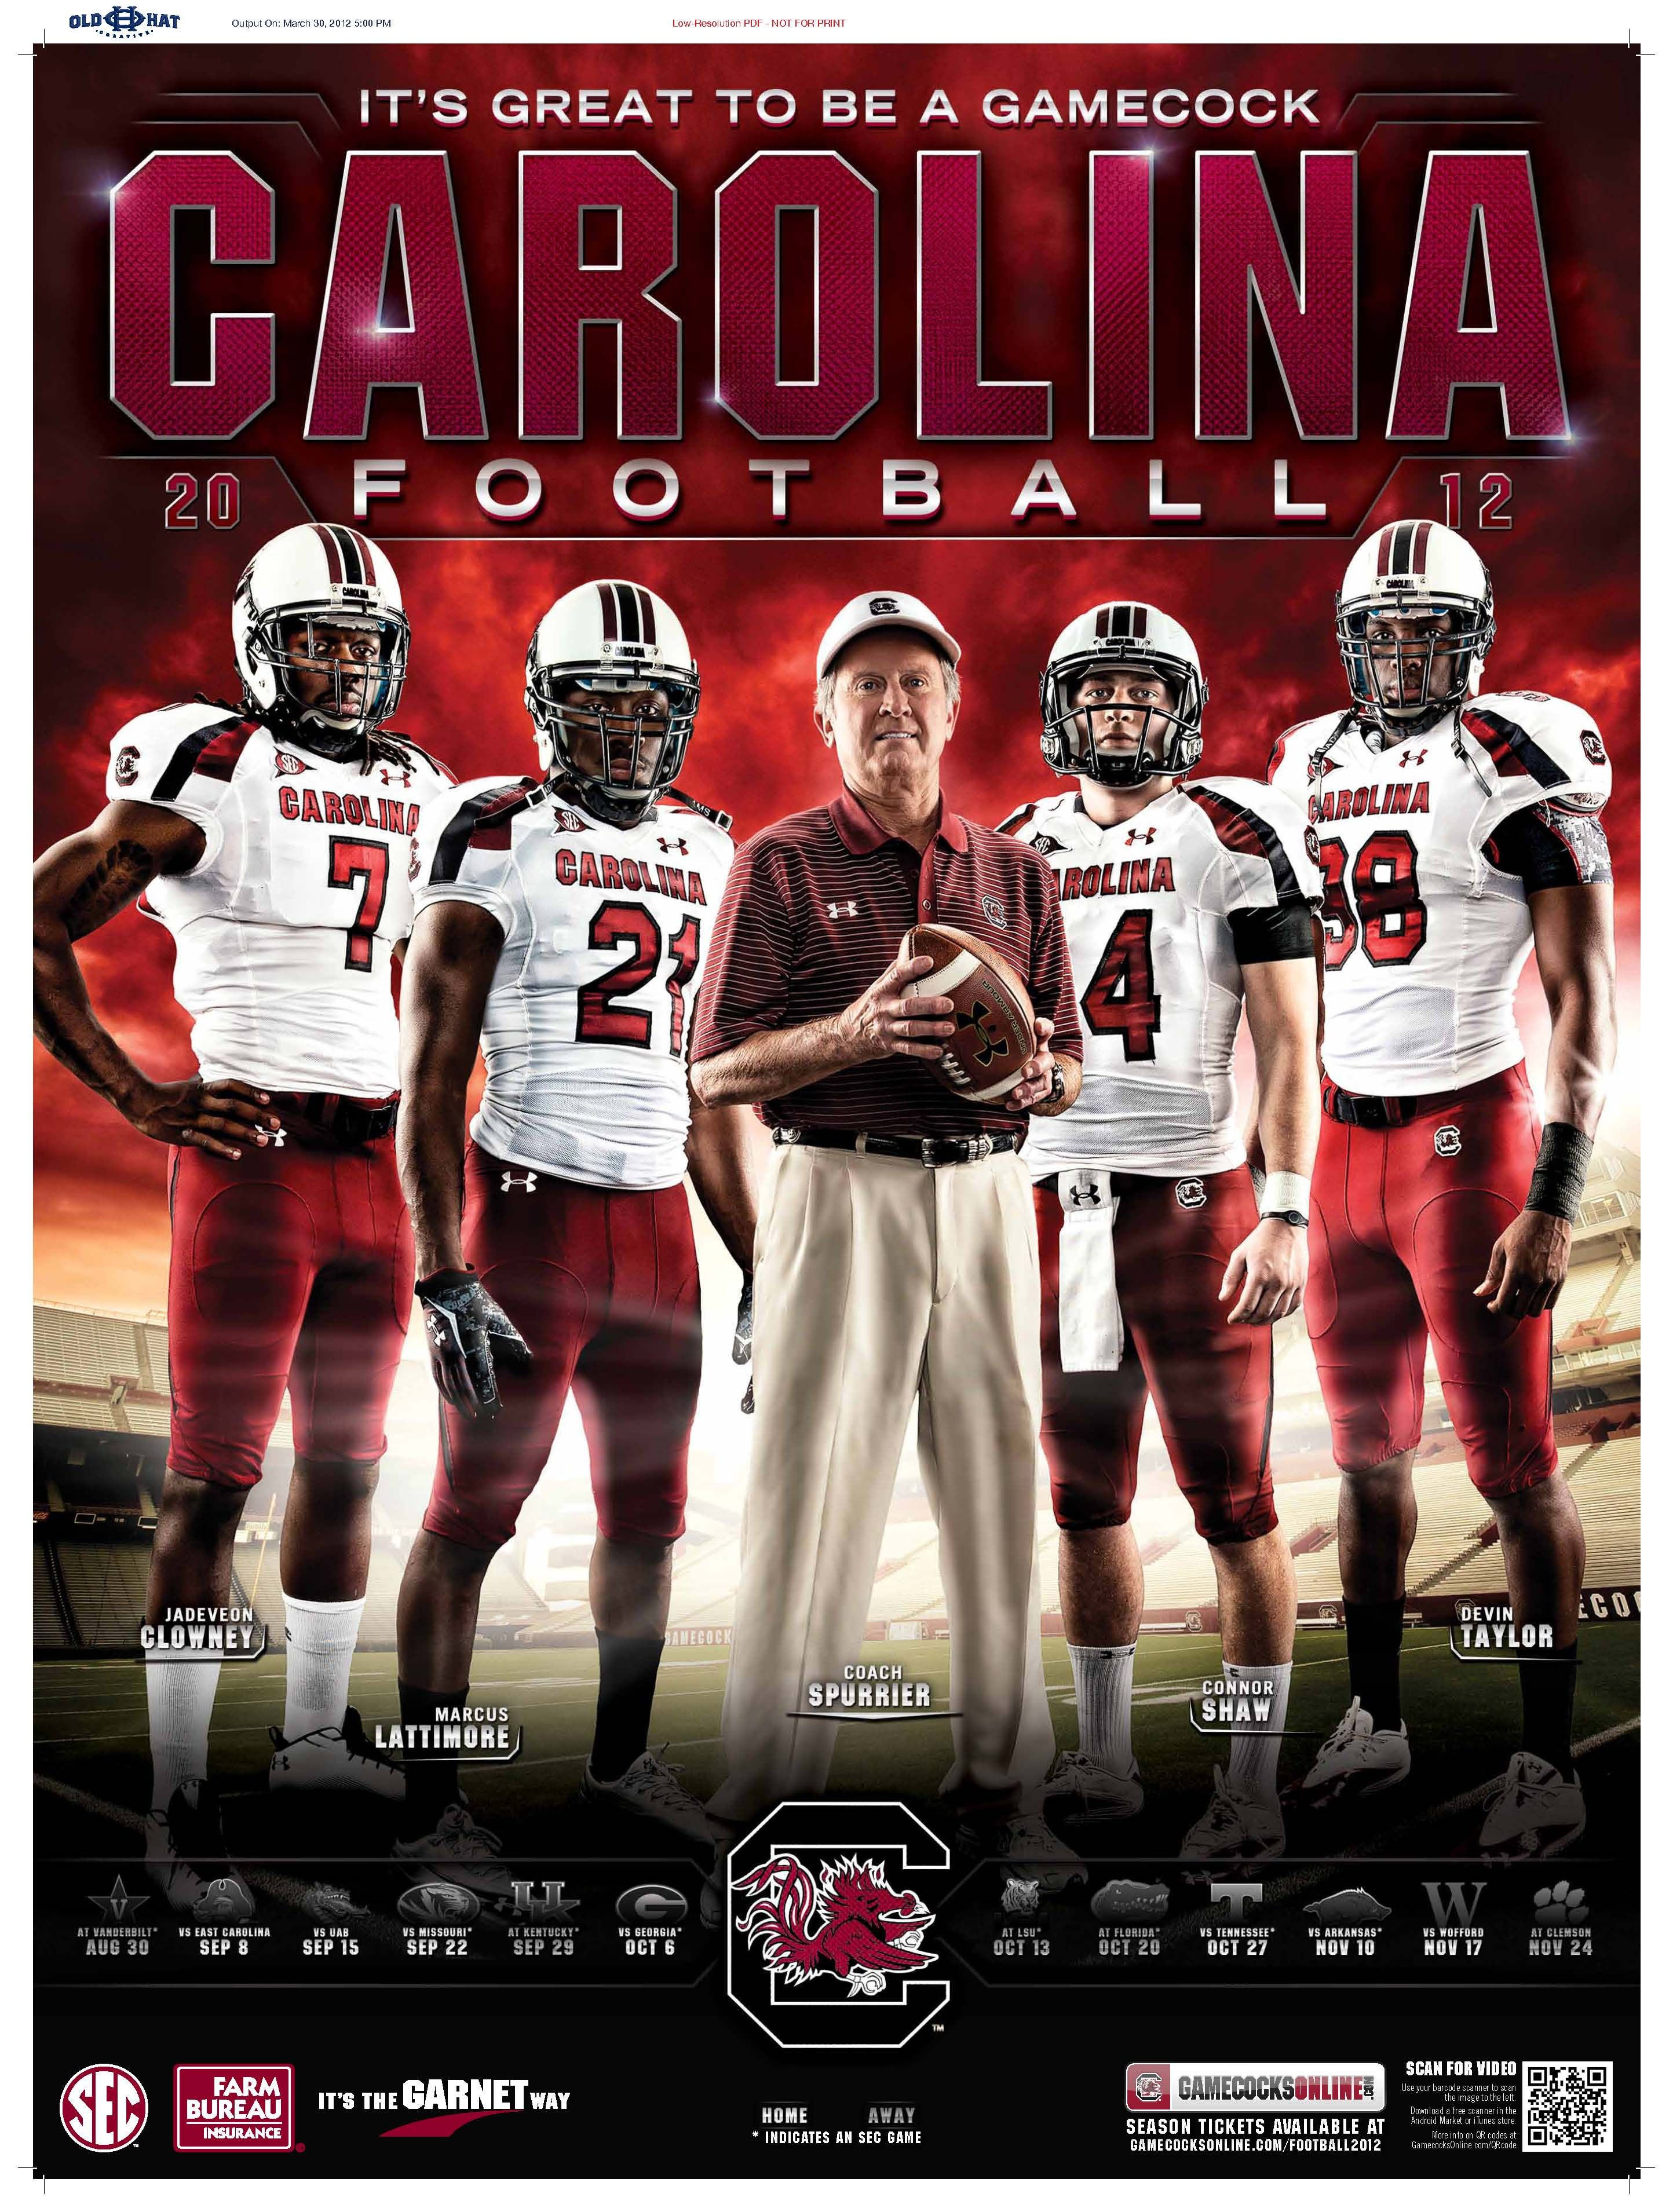 2012 south carolina gamecocks football schedule poster | south